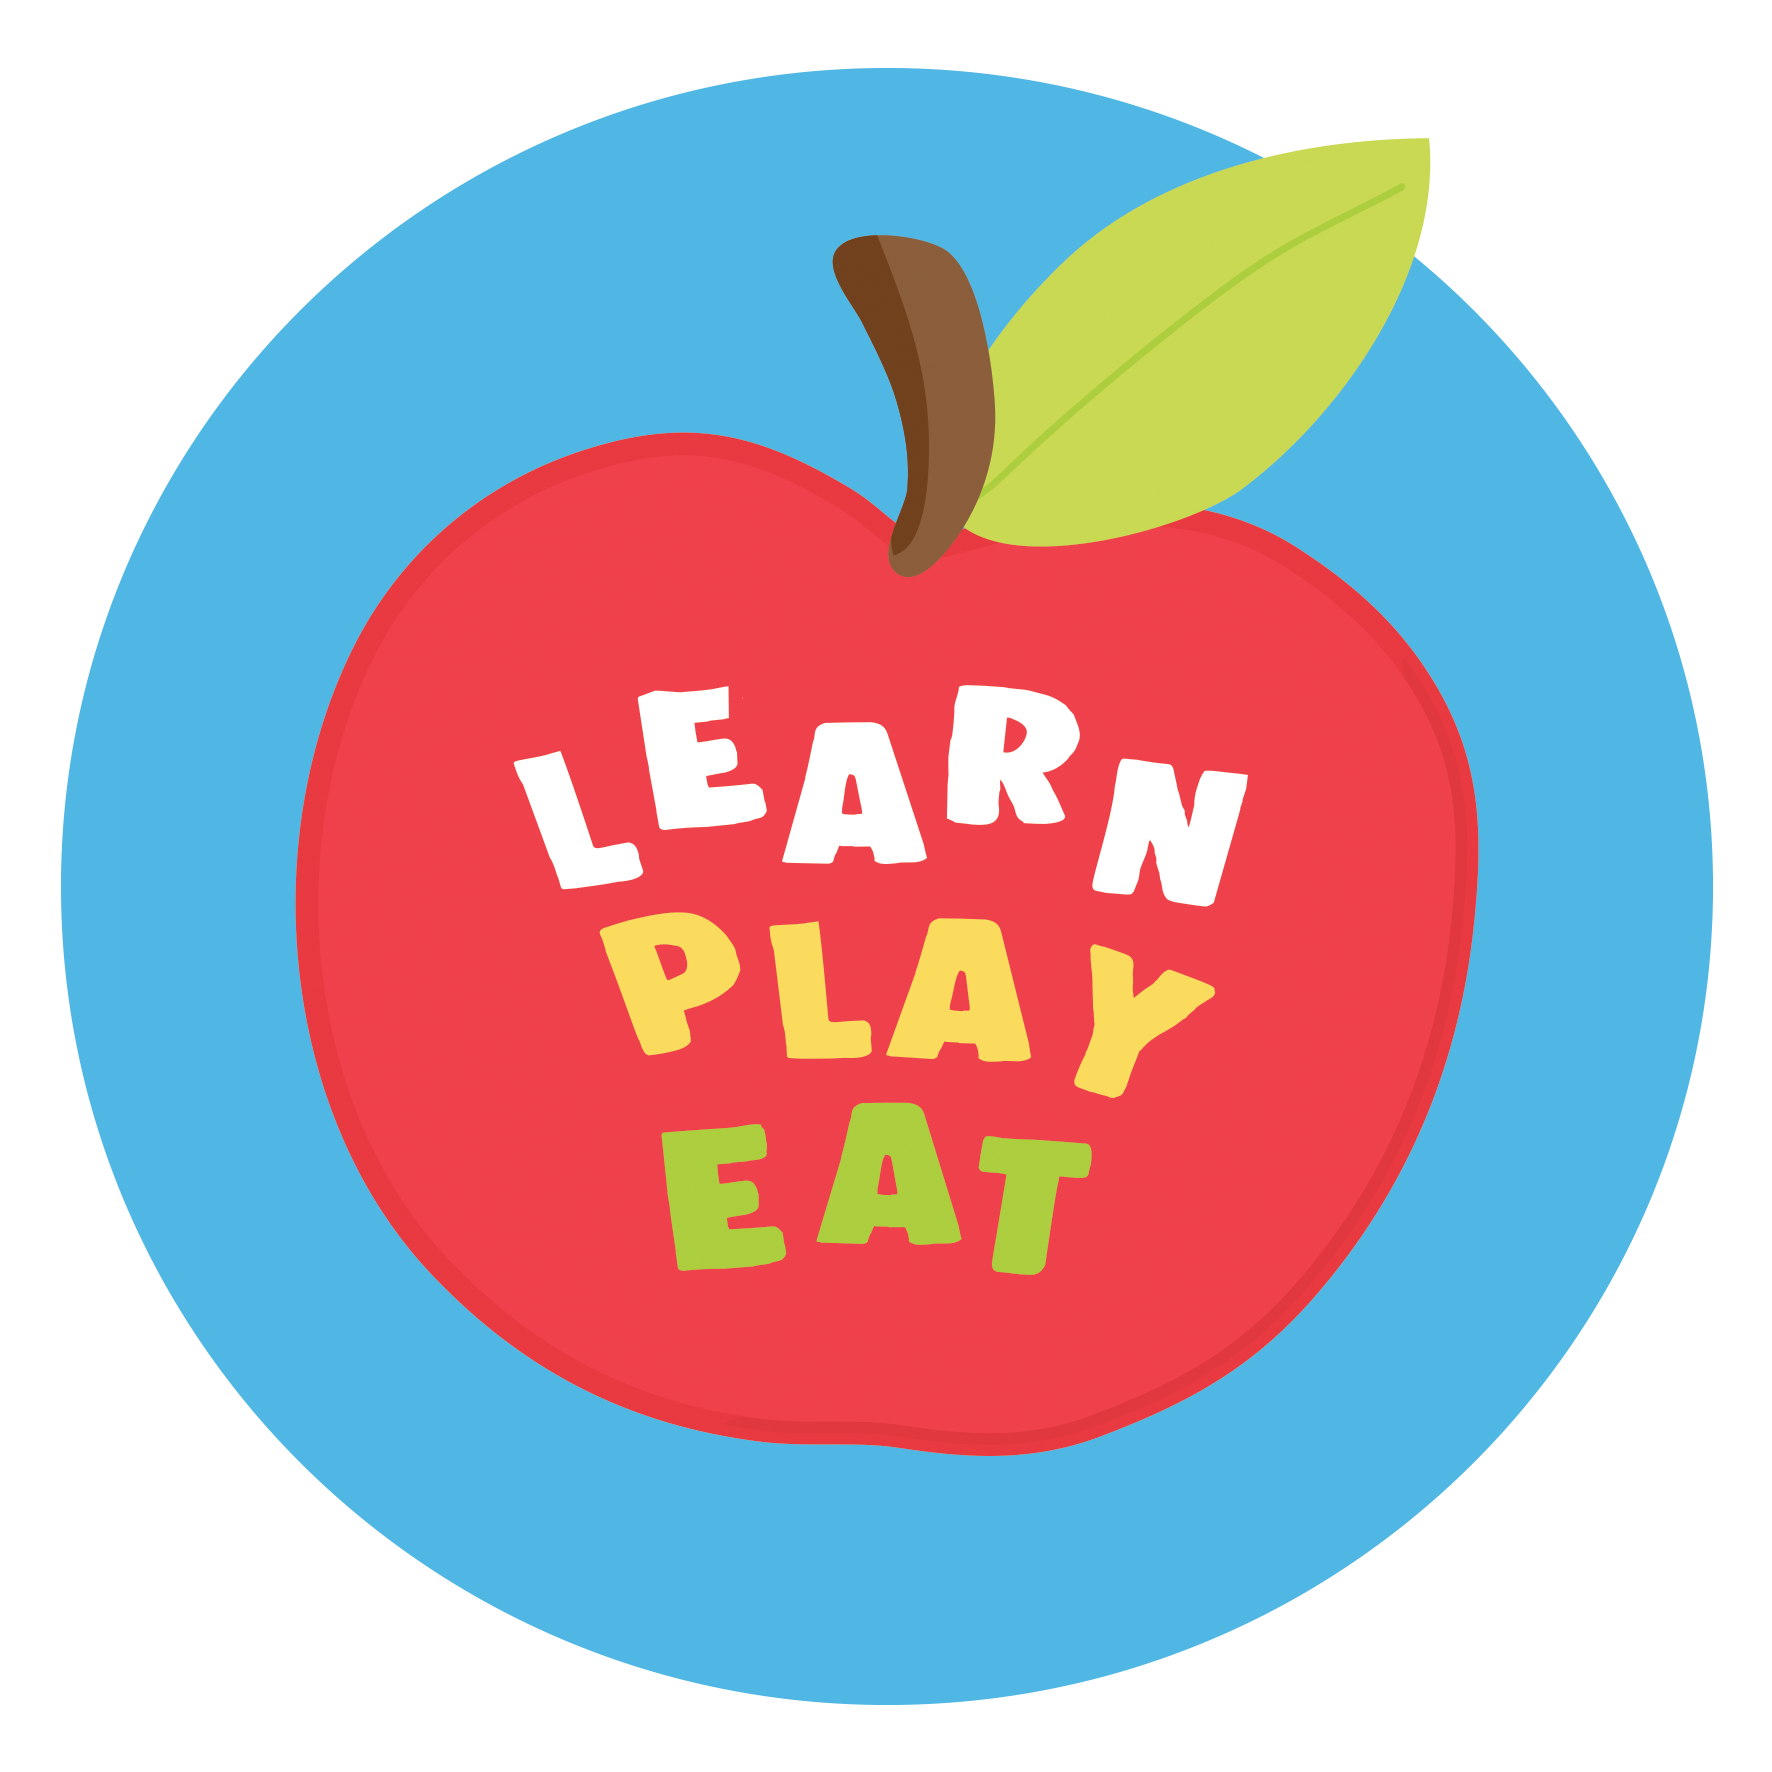 Learn Play Eat